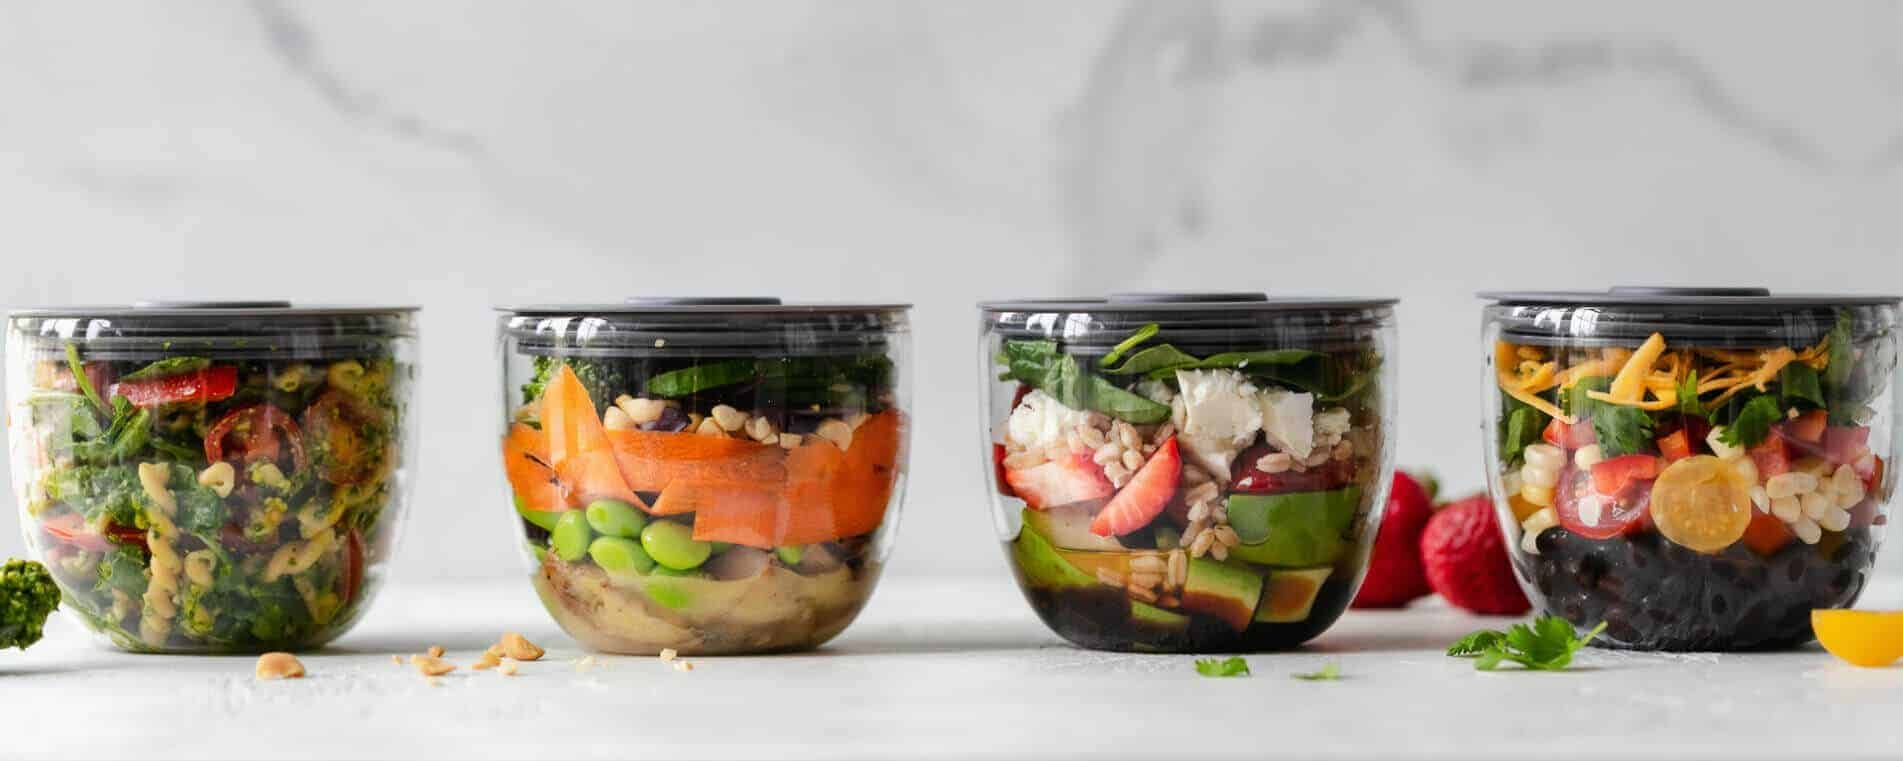 Meal Squared – Eat Real Food